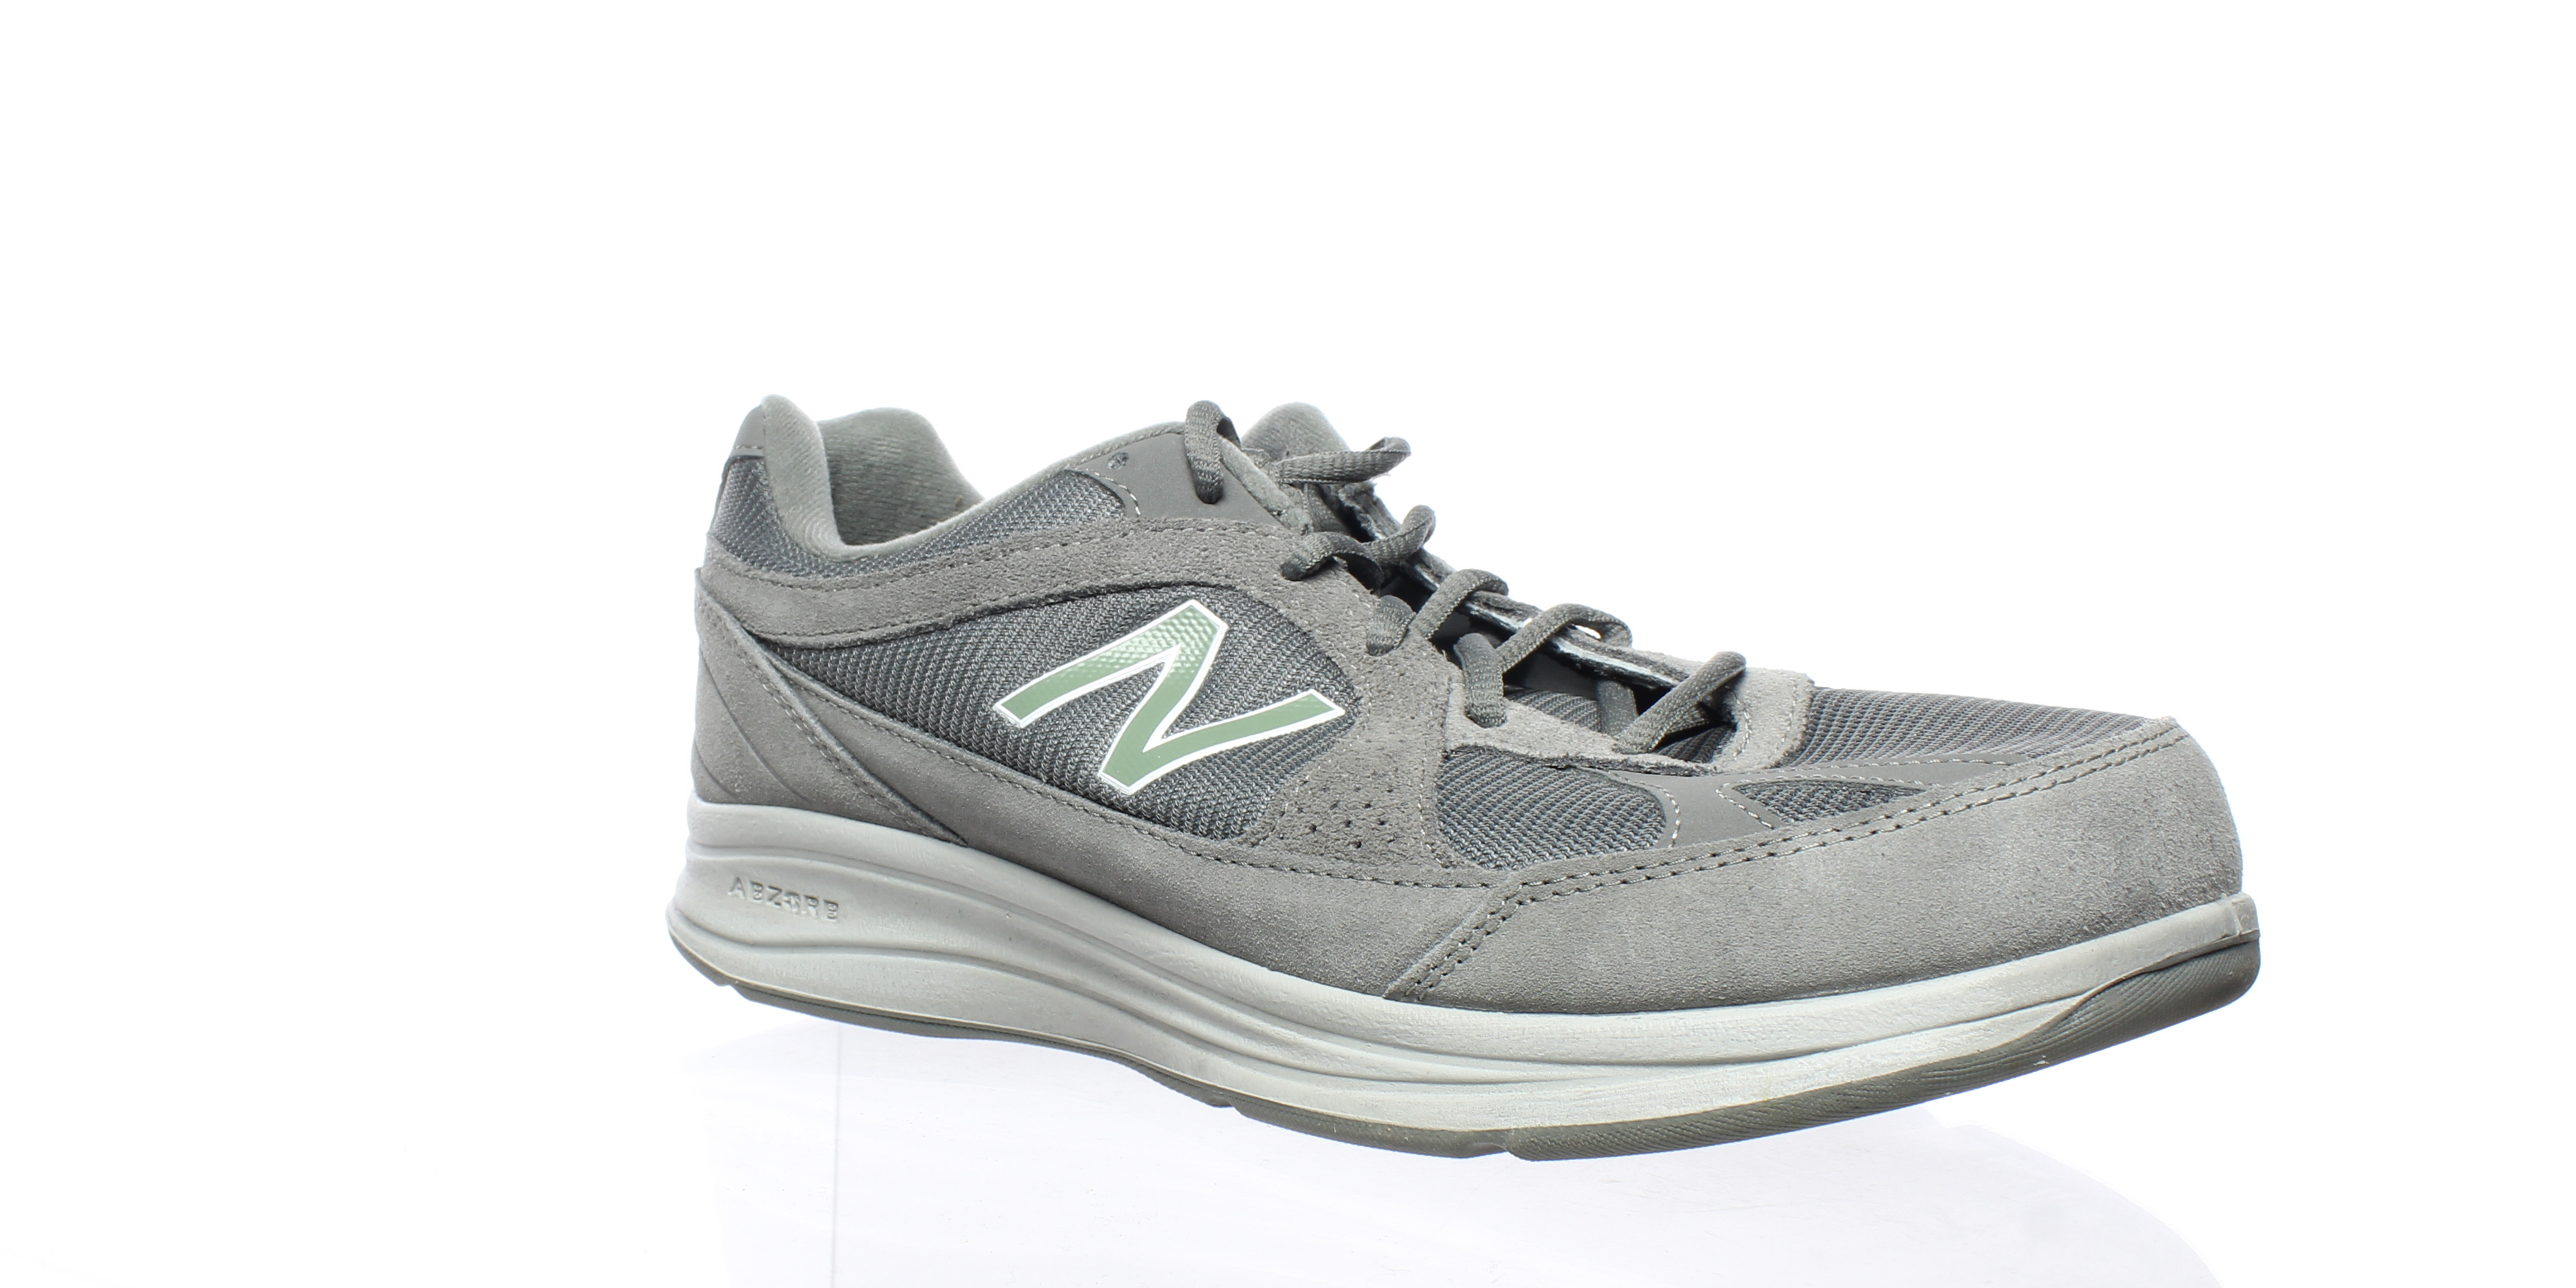 5a8c5518dcd0 New Balance Mens Mw877gt Grey Walking Shoes Size 9.5 (2E) (193410 ...